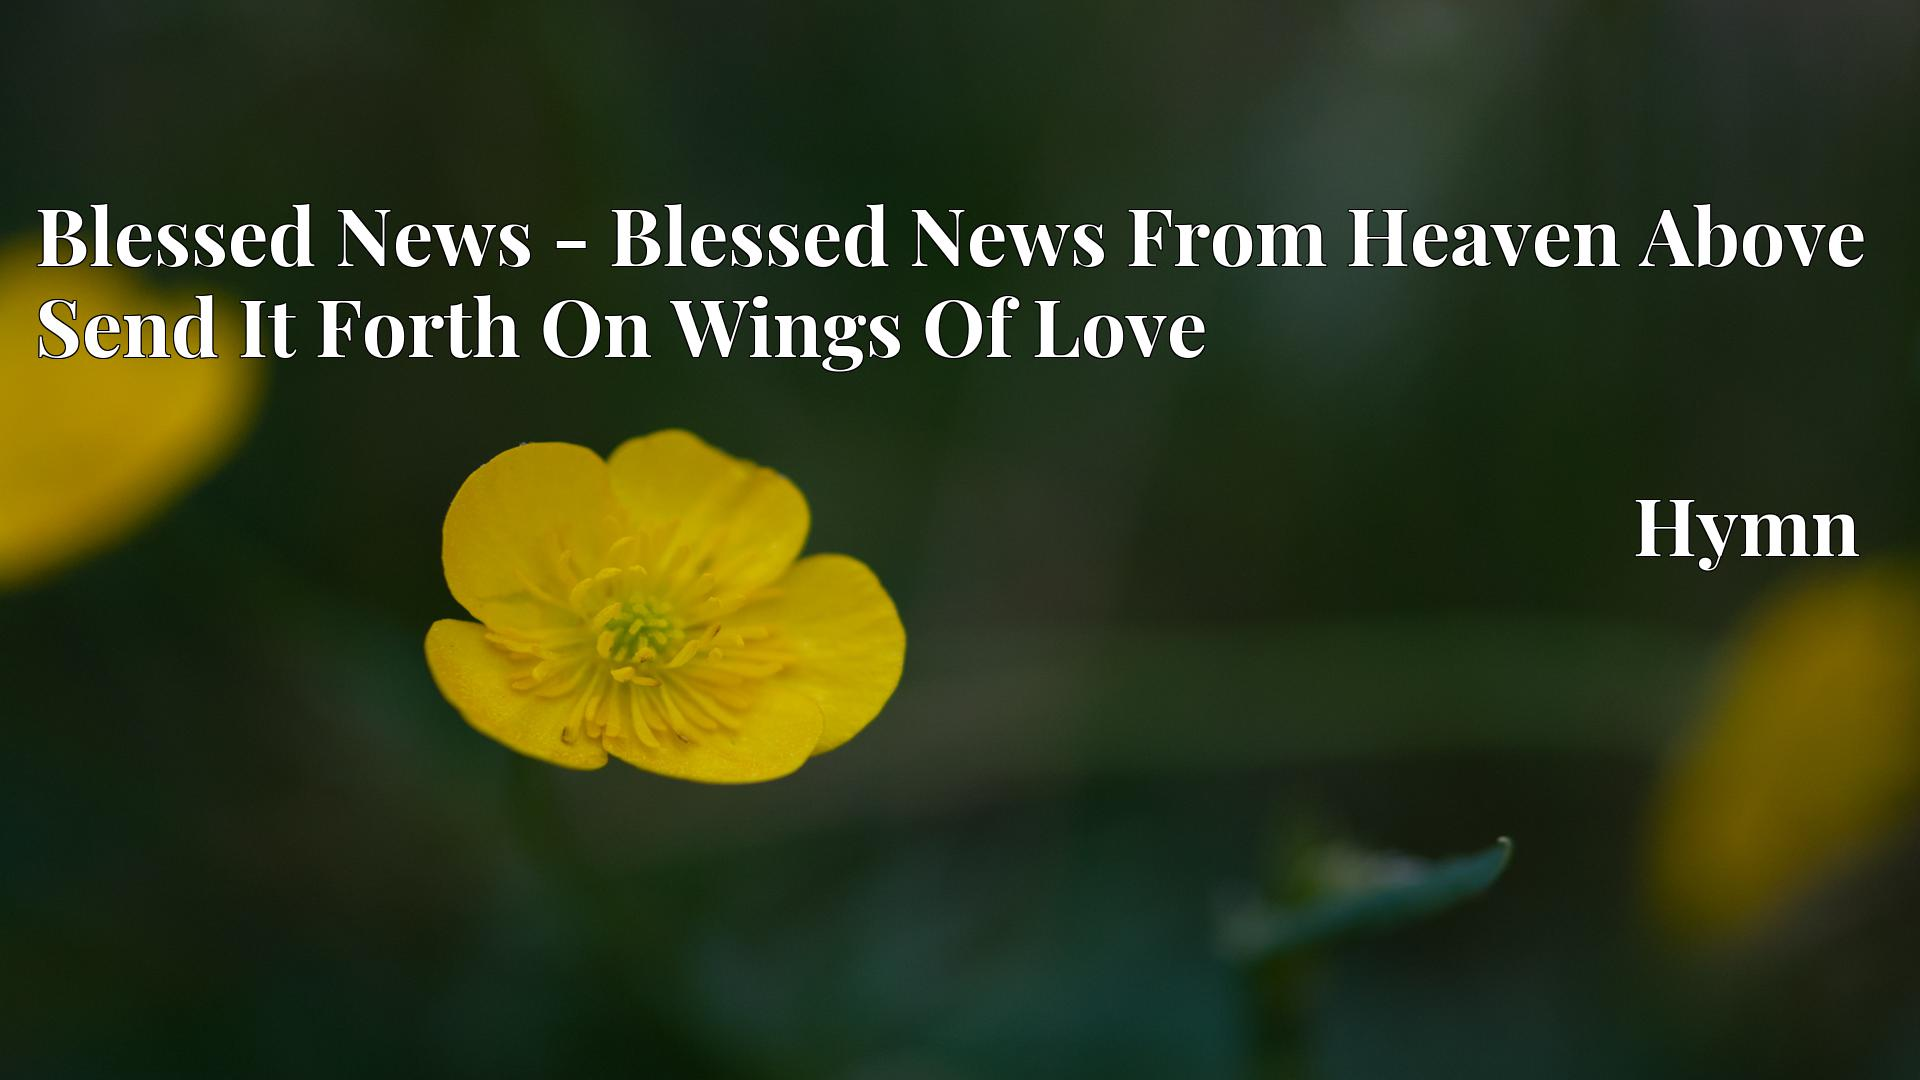 Blessed News - Blessed News From Heaven Above Send It Forth On Wings Of Love - Hymn